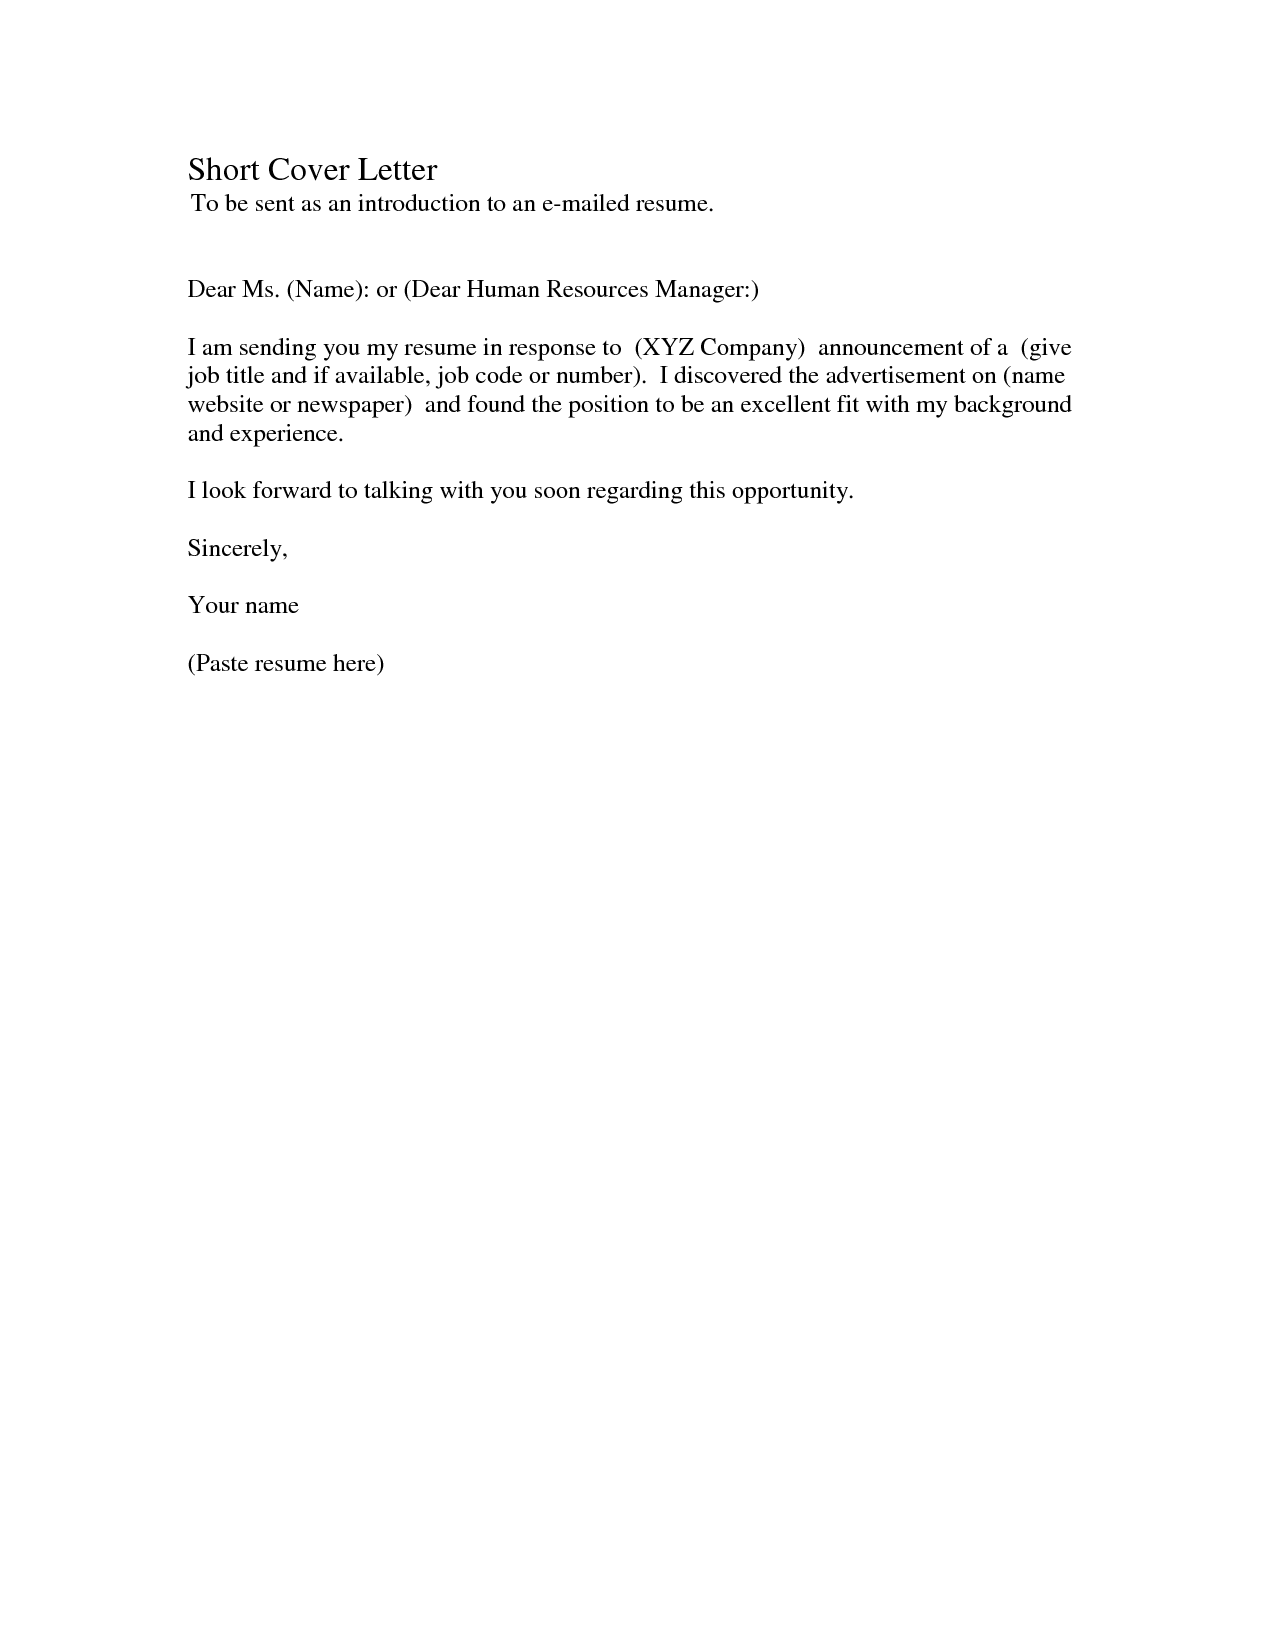 cover letter template short #cover #coverlettertemplate #letter